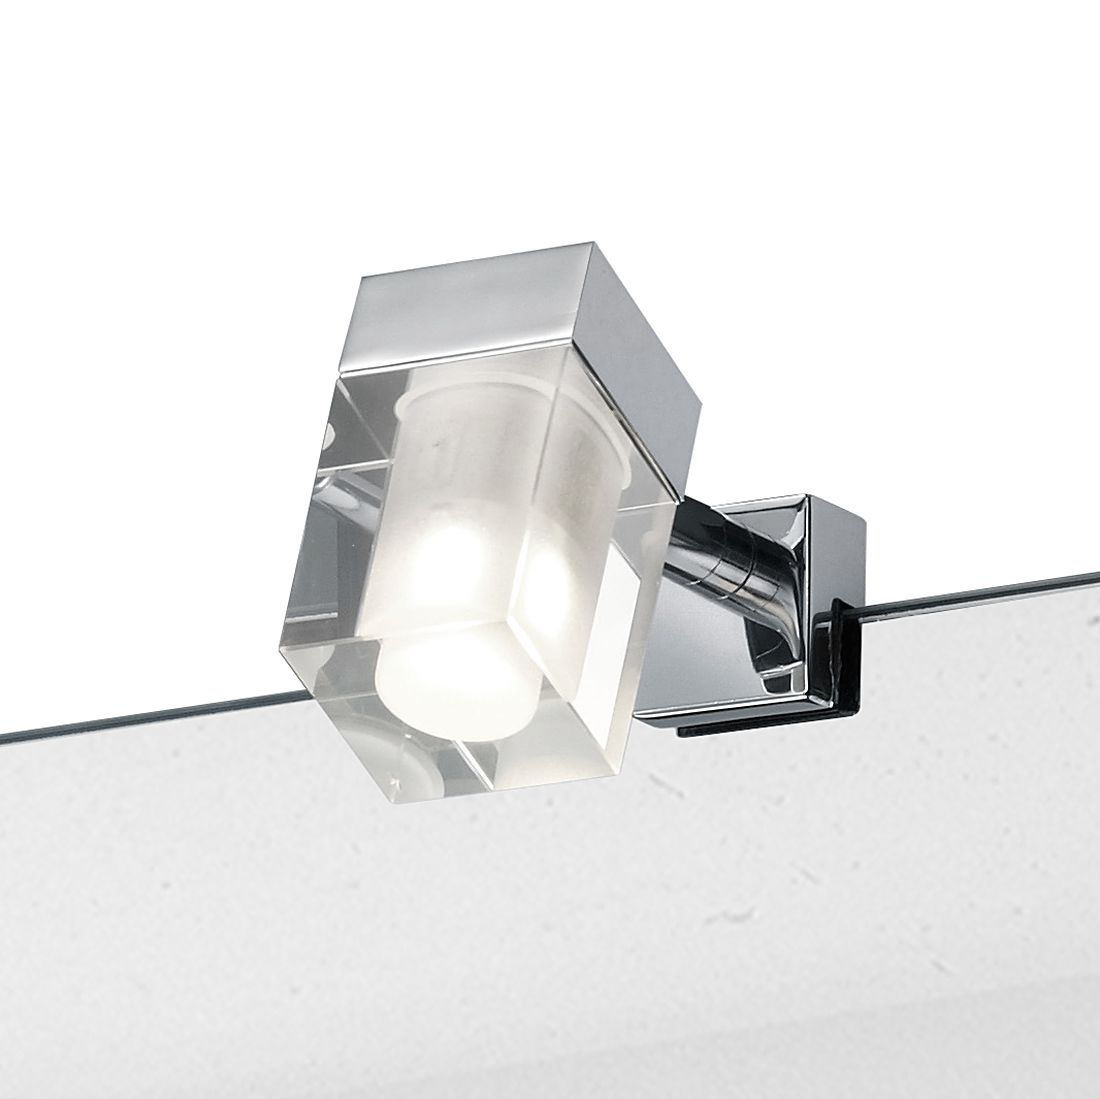 EEK A+, LED-Wandleuchte - Metall - Chrom - 1-flammig, Trio